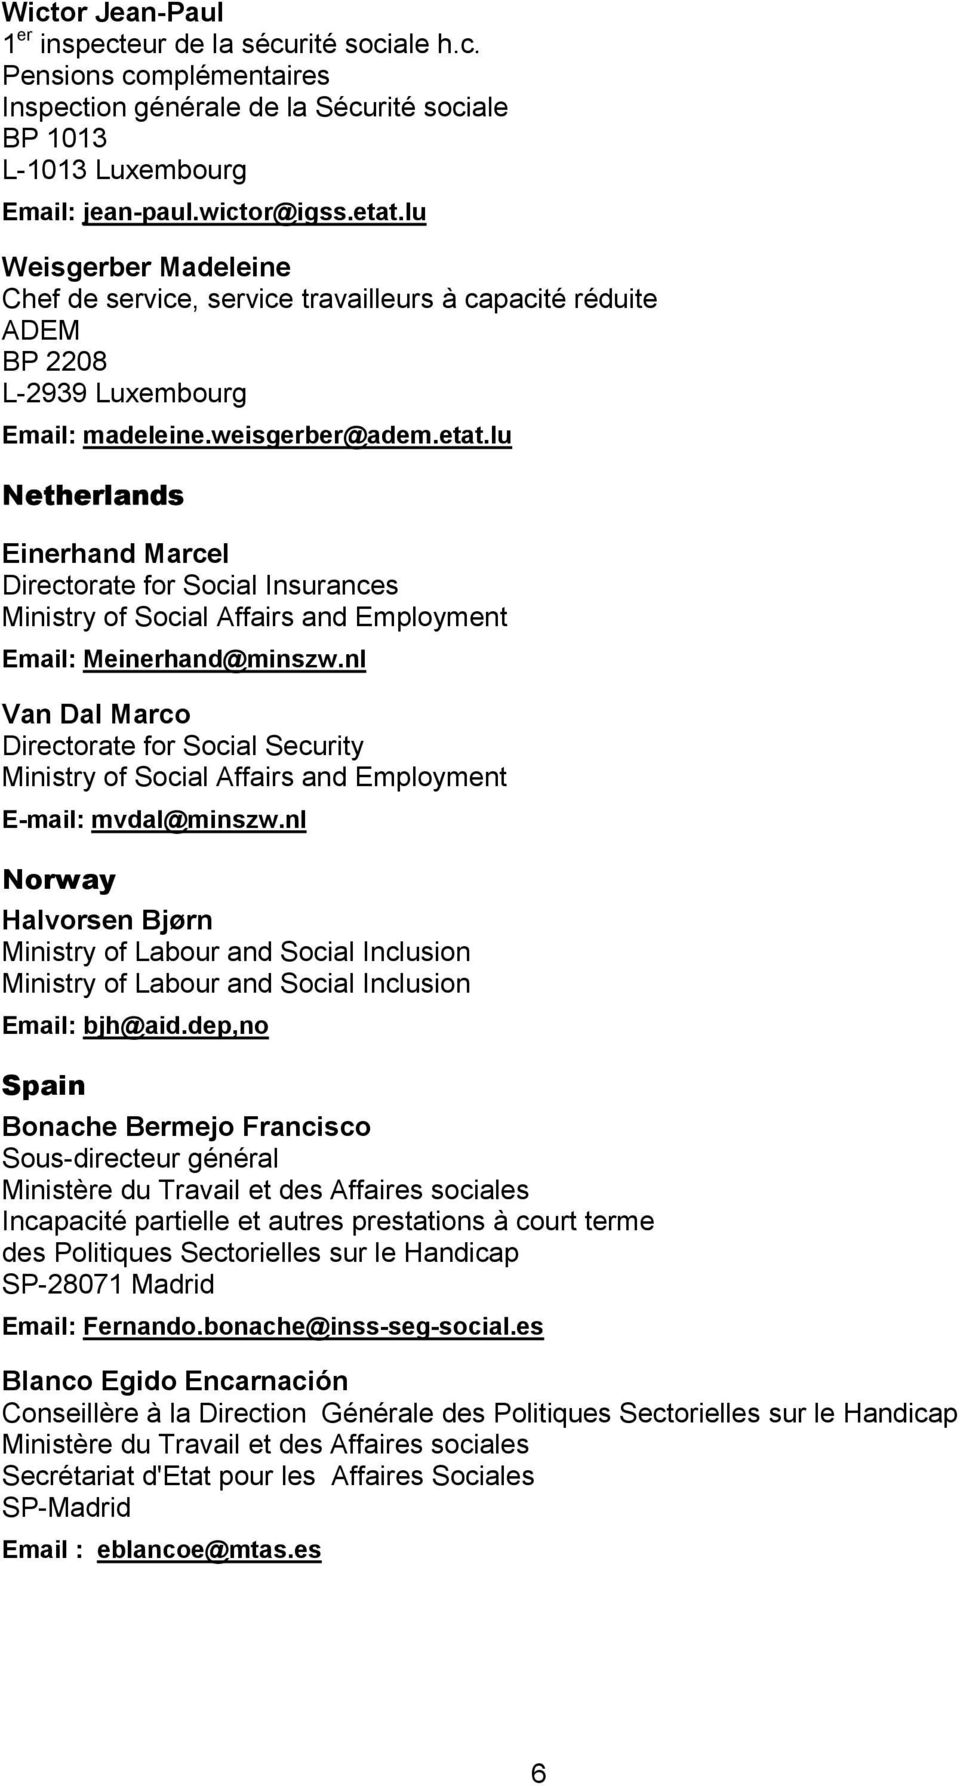 lu Netherlands Einerhand Marcel Directorate for Social Insurances Ministry of Social Affairs and Employment Email: Meinerhand@minszw.